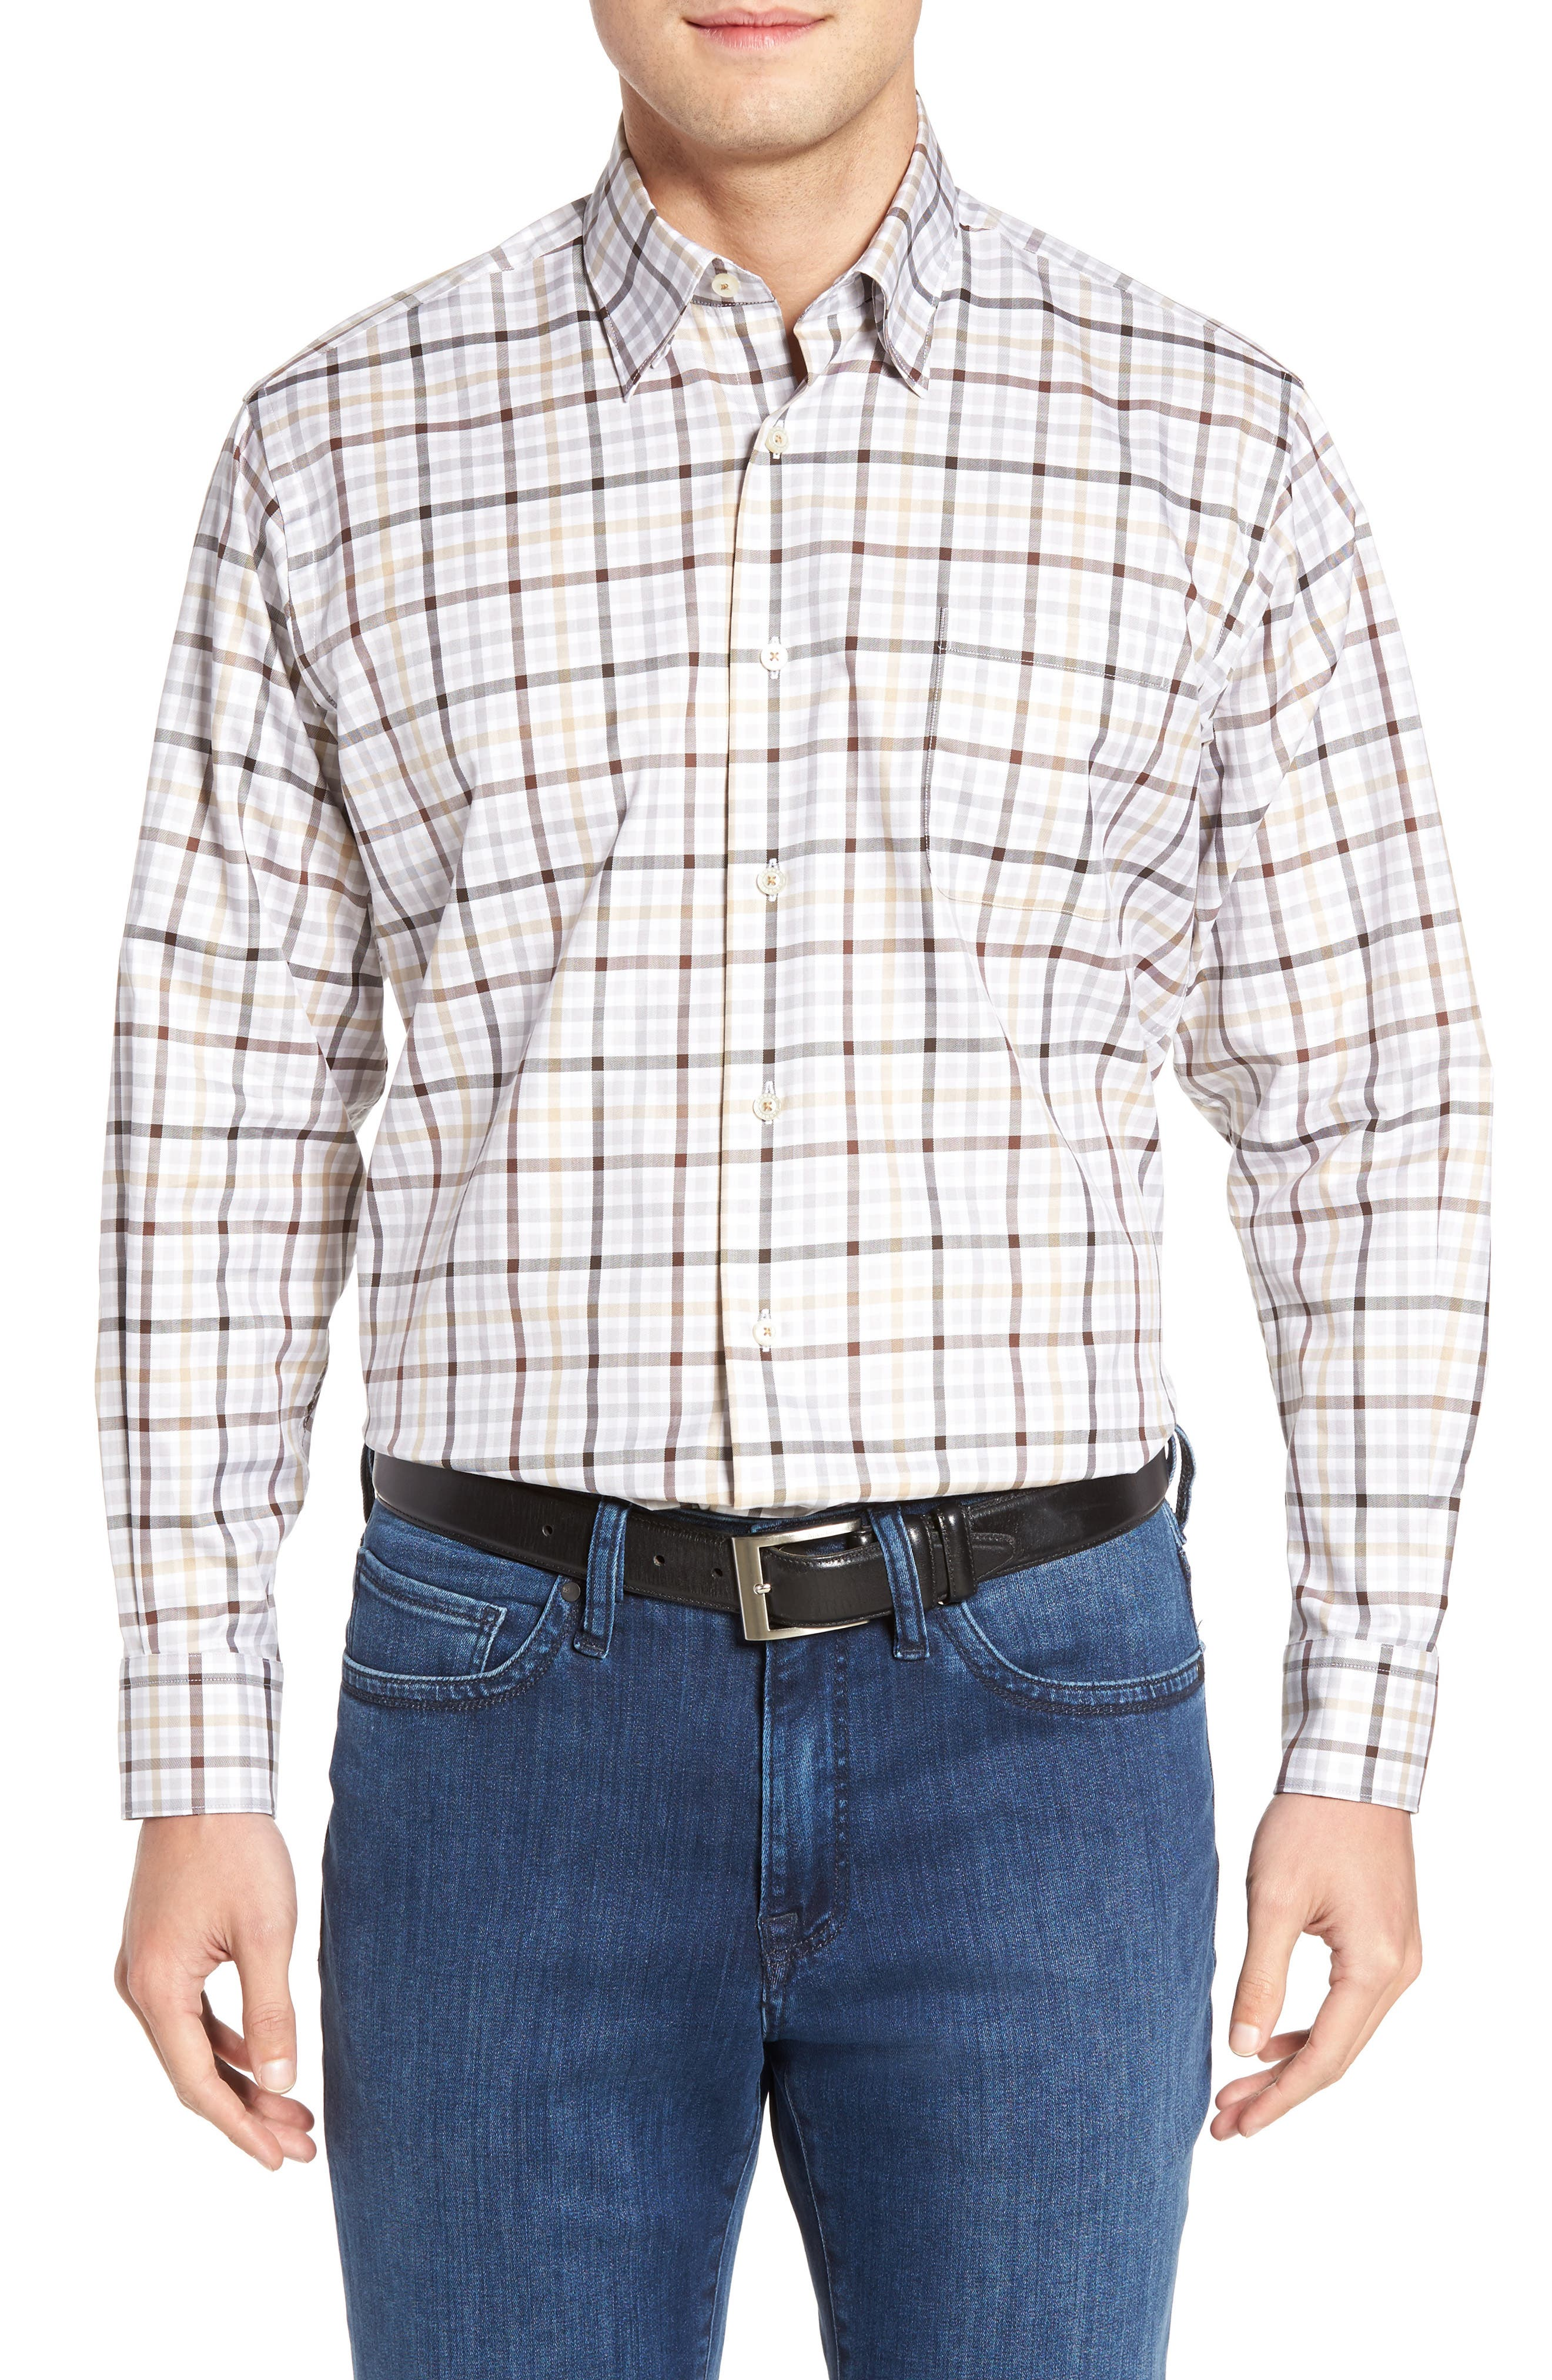 Anderson Classic Fit Plaid Micro Twill Sport Shirt,                         Main,                         color, 201